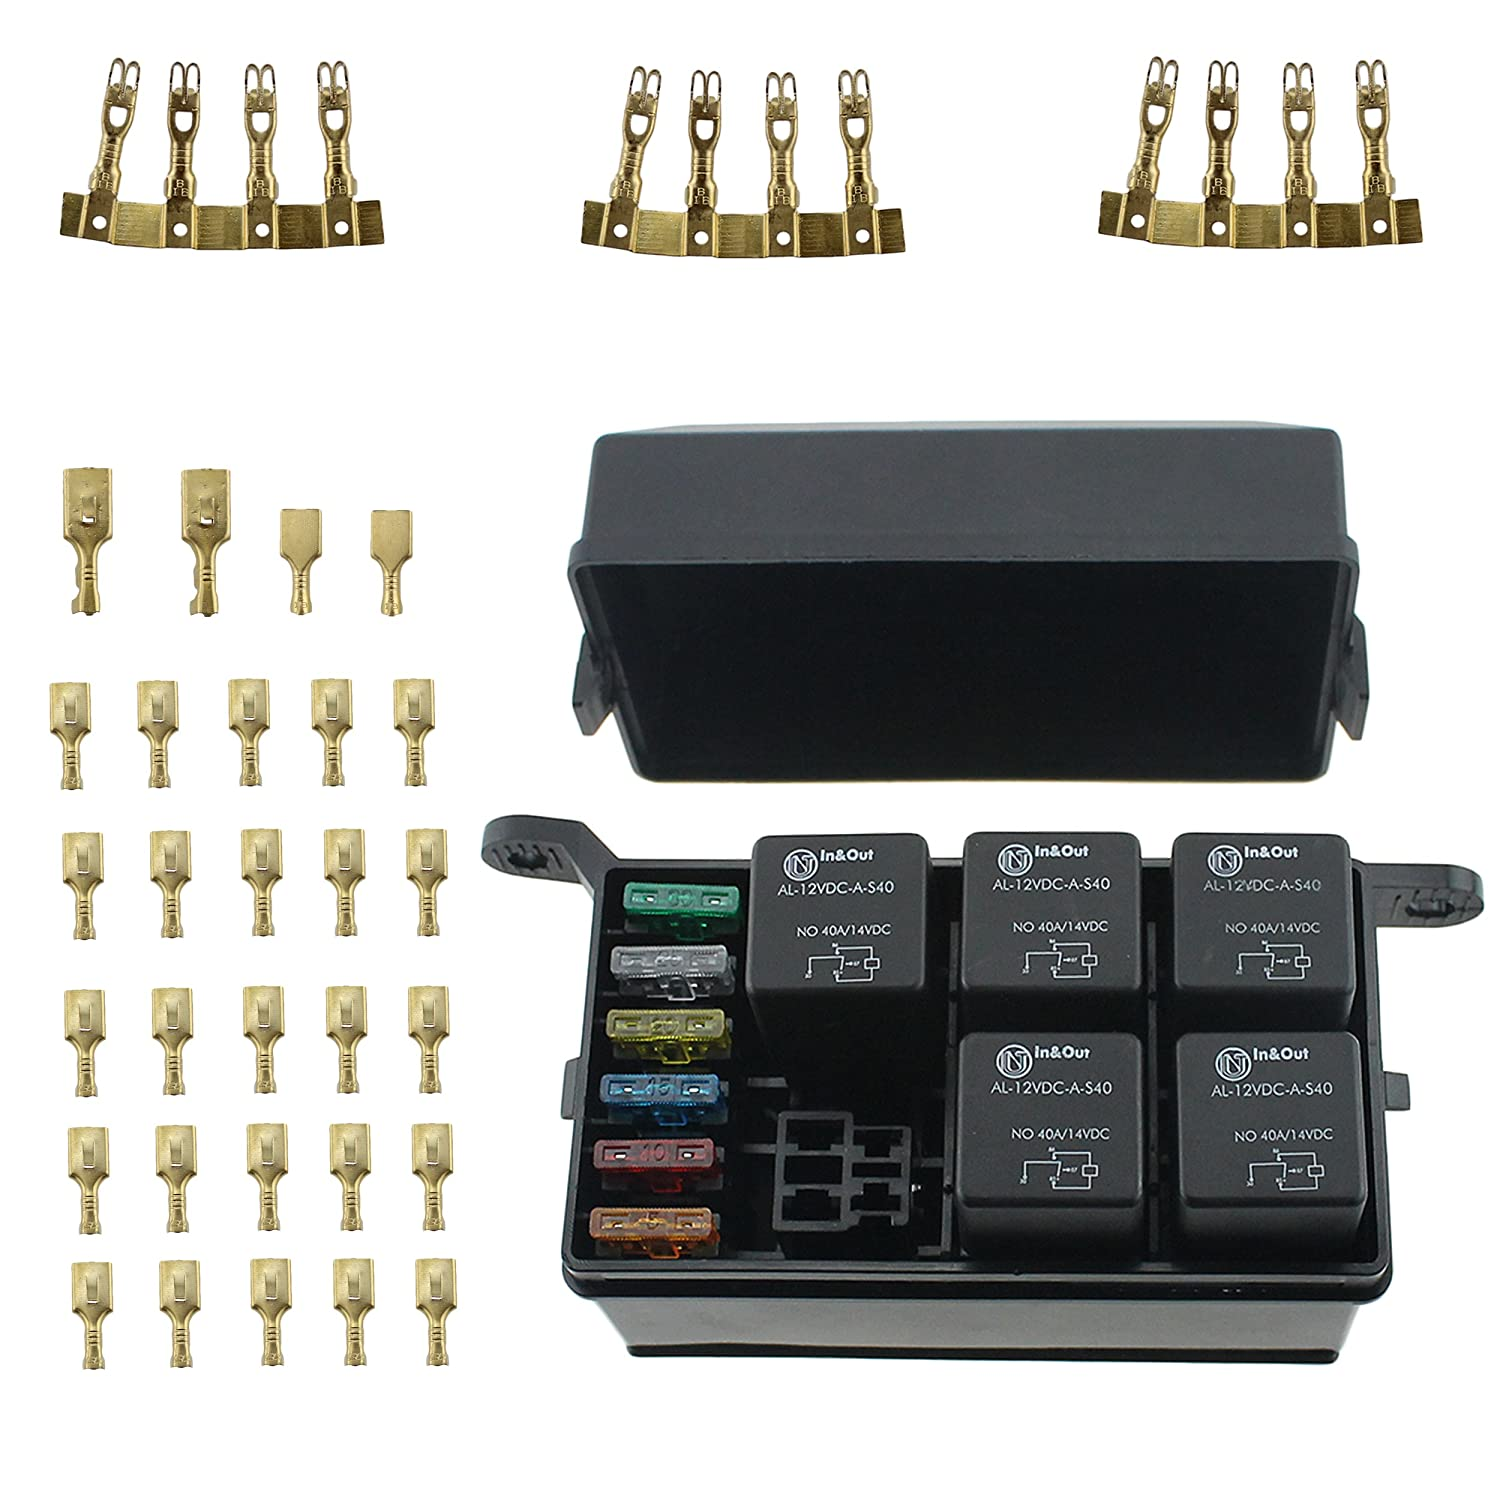 81Uj6Pmk1gL._SL1500_ amazon com fuse boxes fuses & accessories automotive Fuse Box to Breaker Box at virtualis.co